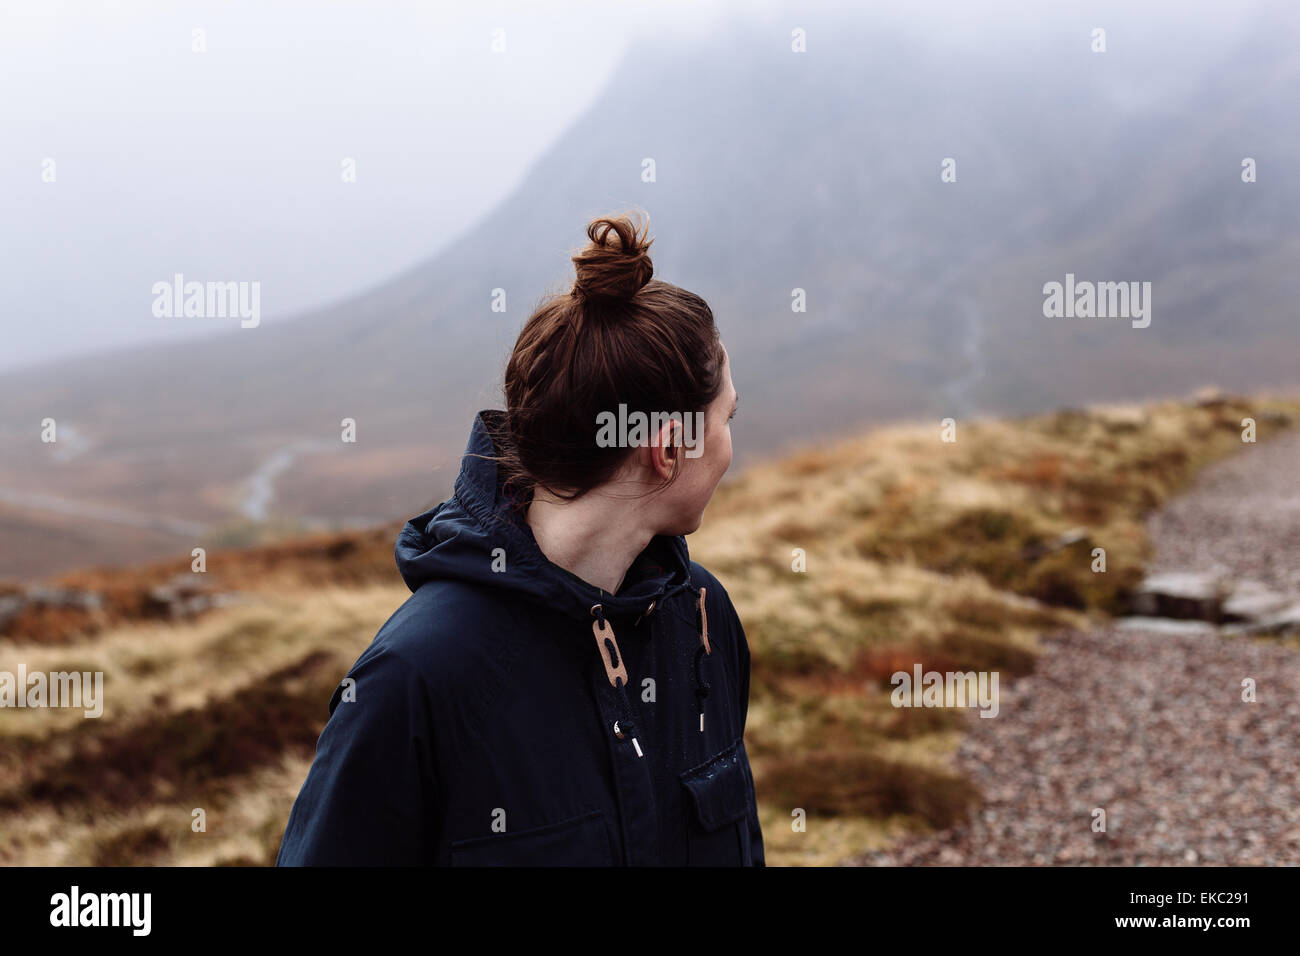 Woman looking over shoulder towards mountains - Stock Image